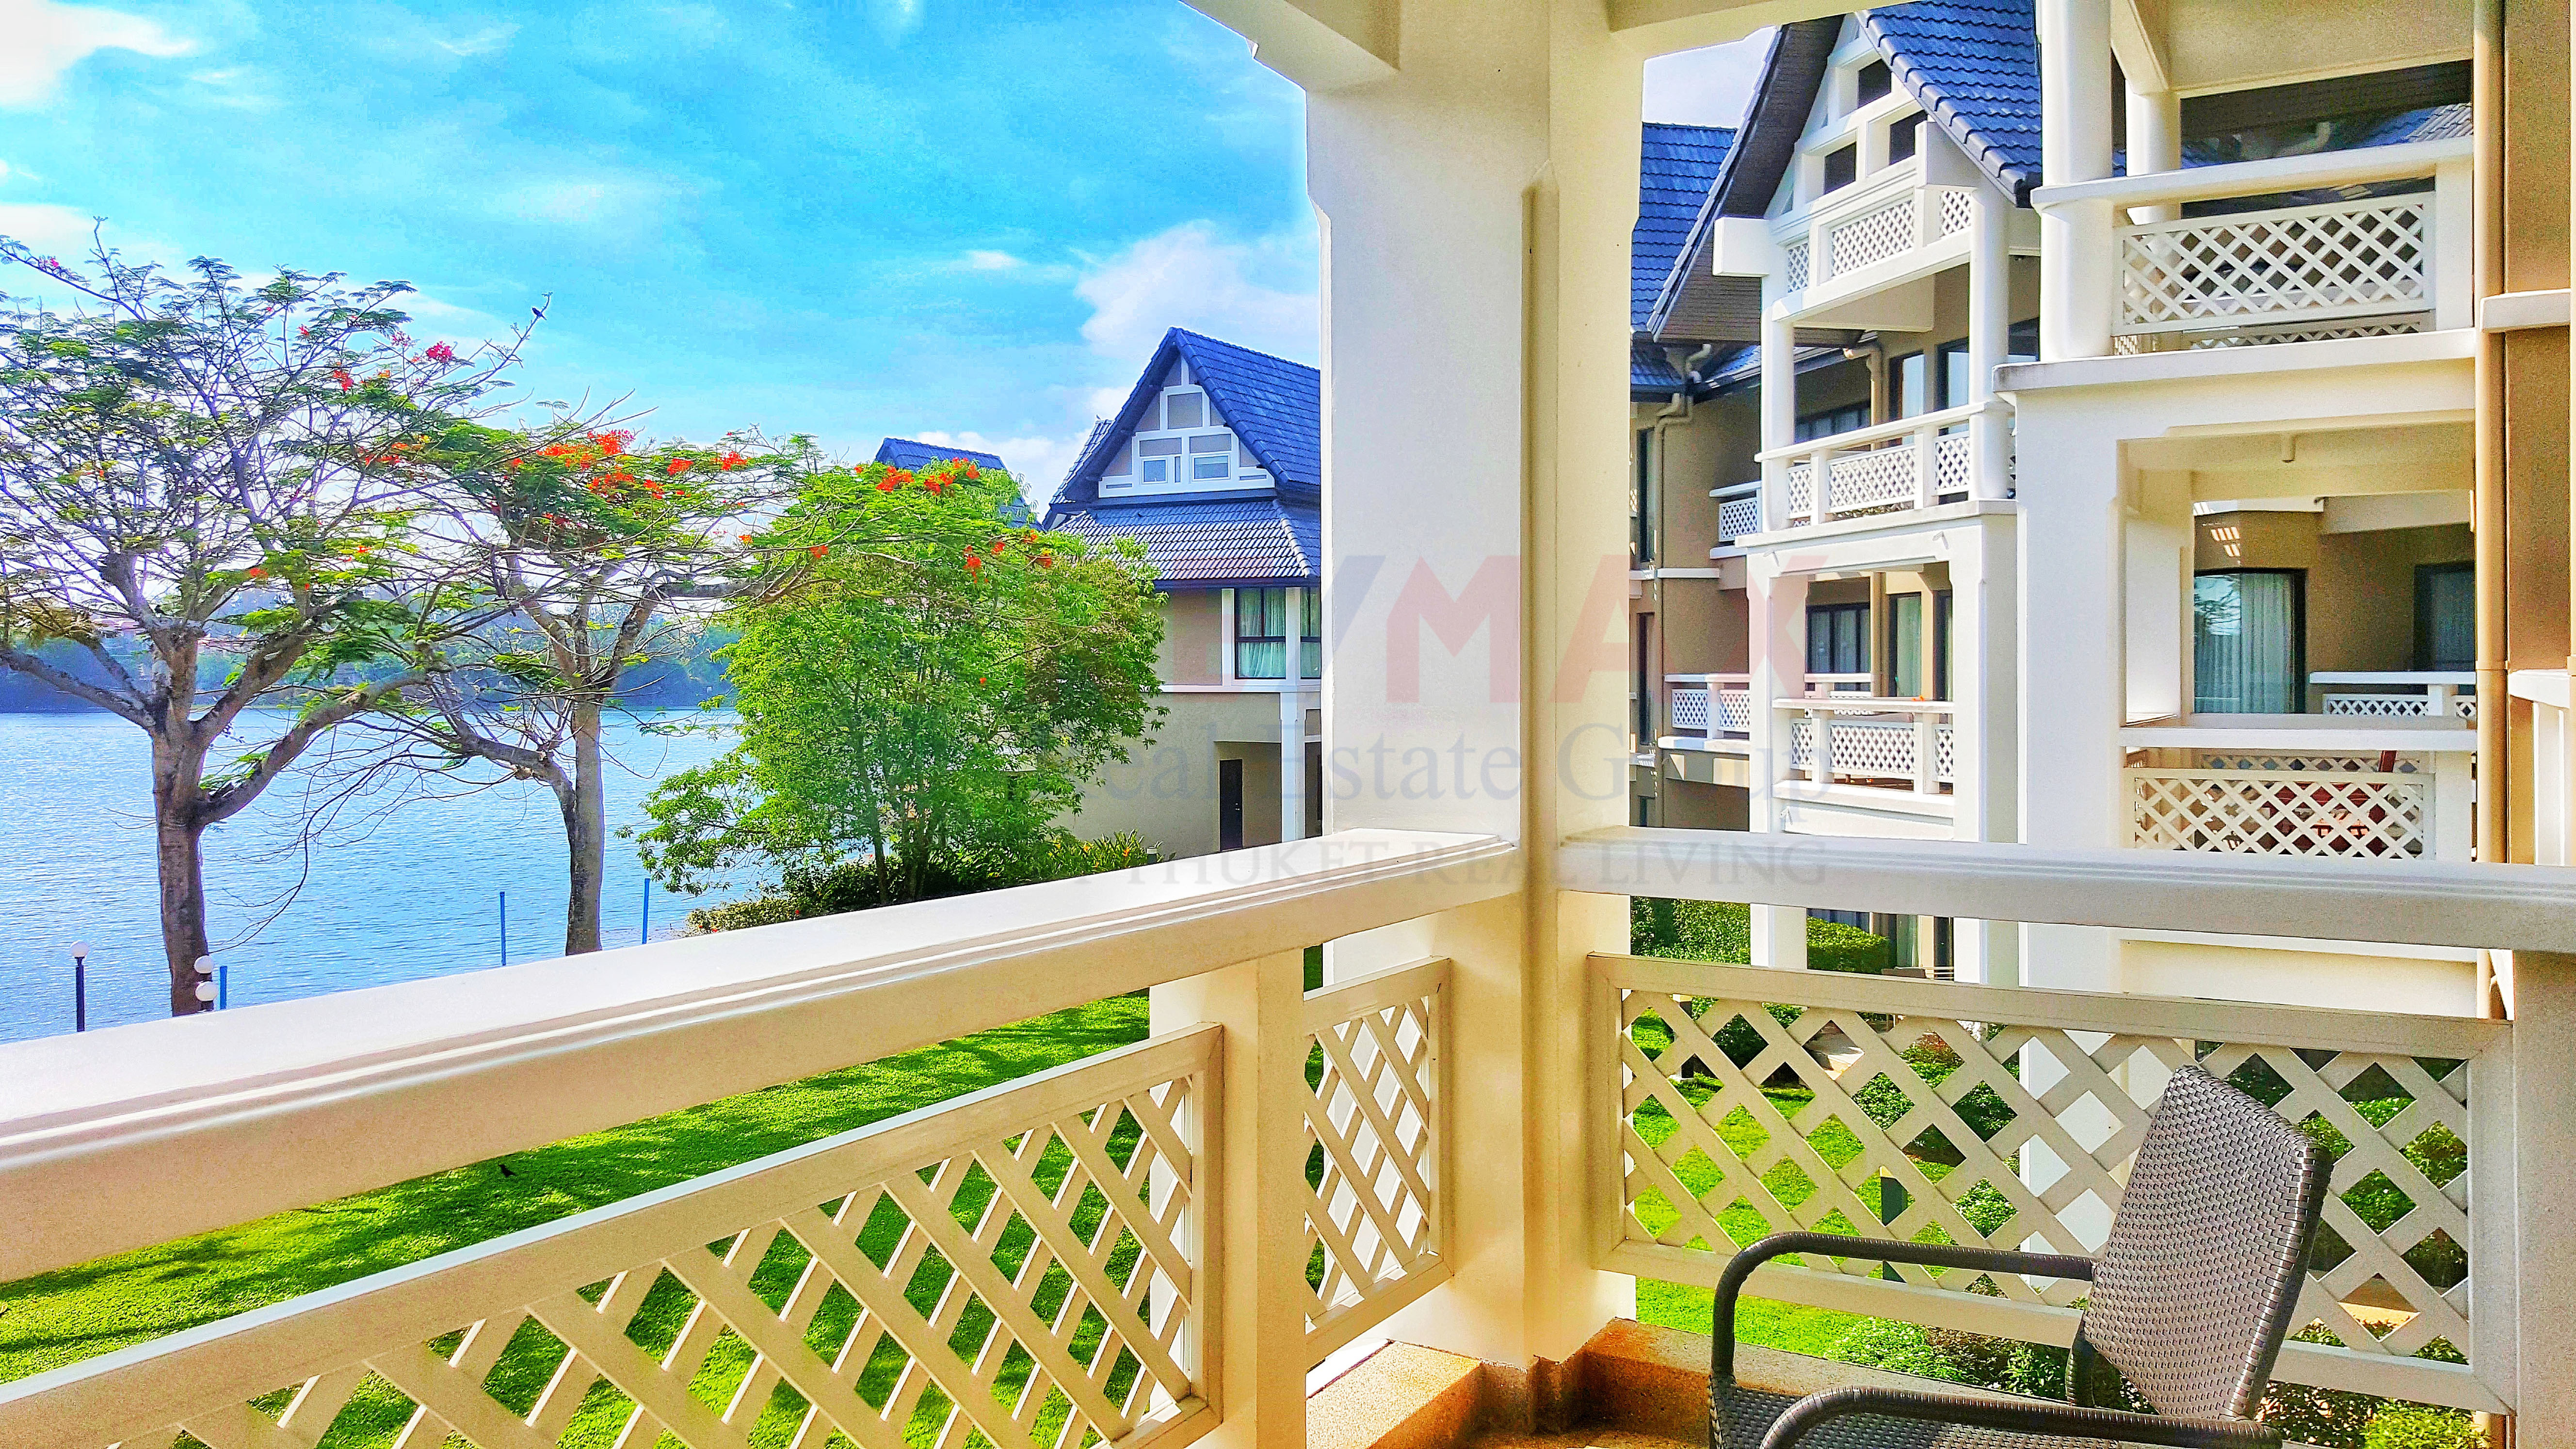 1-Bedroom Apartment In Laguna for Sale